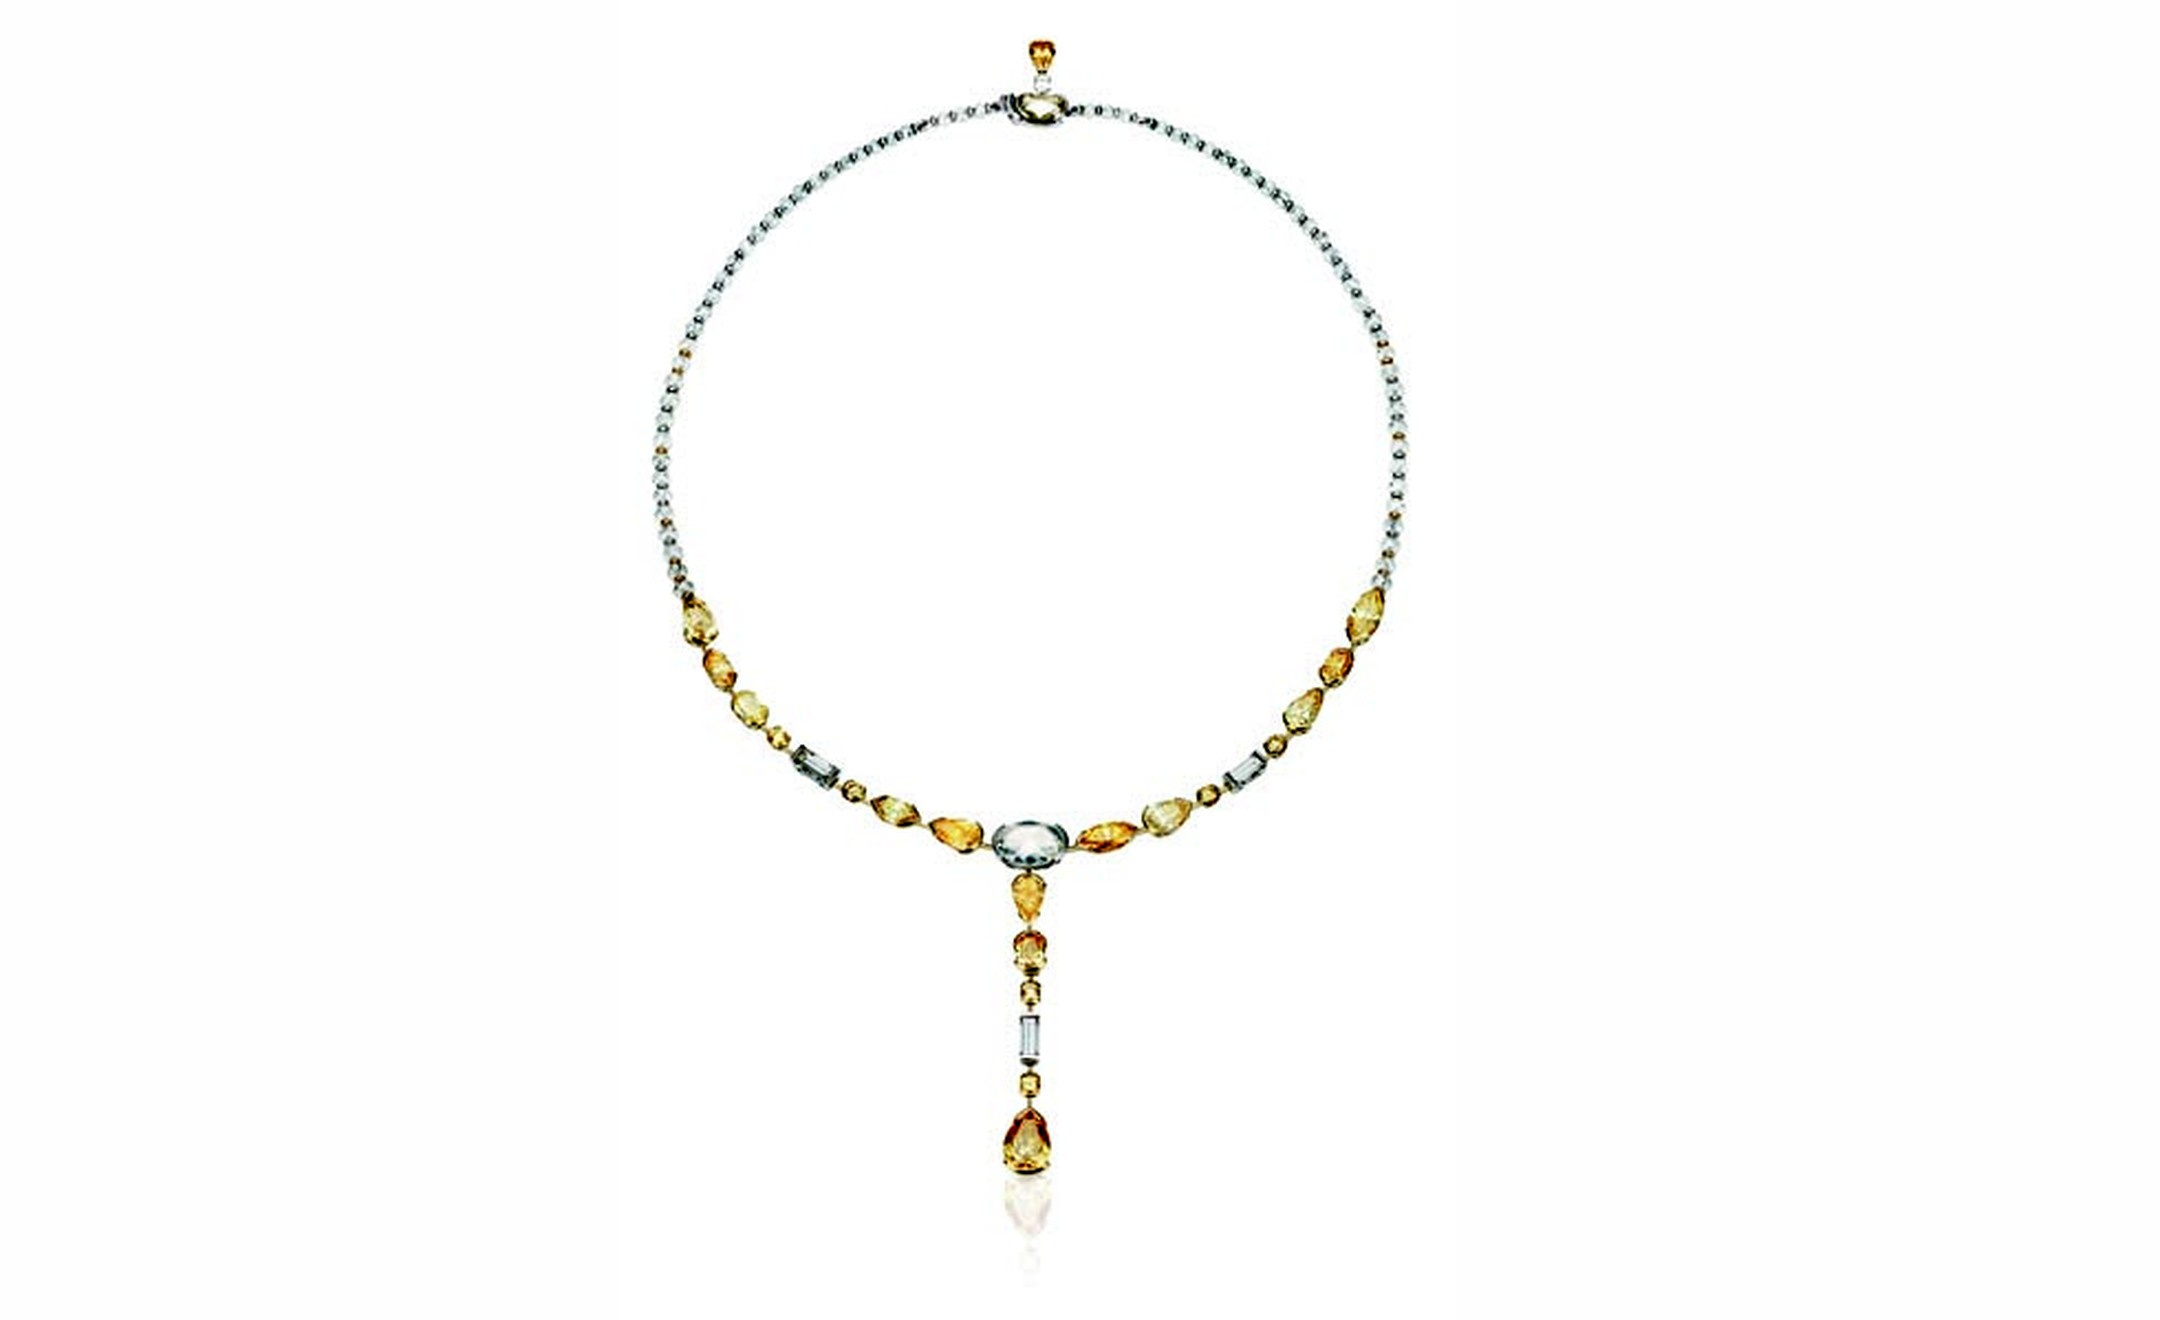 DE BEERS, Swan Lake Necklace Yellow and White Diamonds. POA